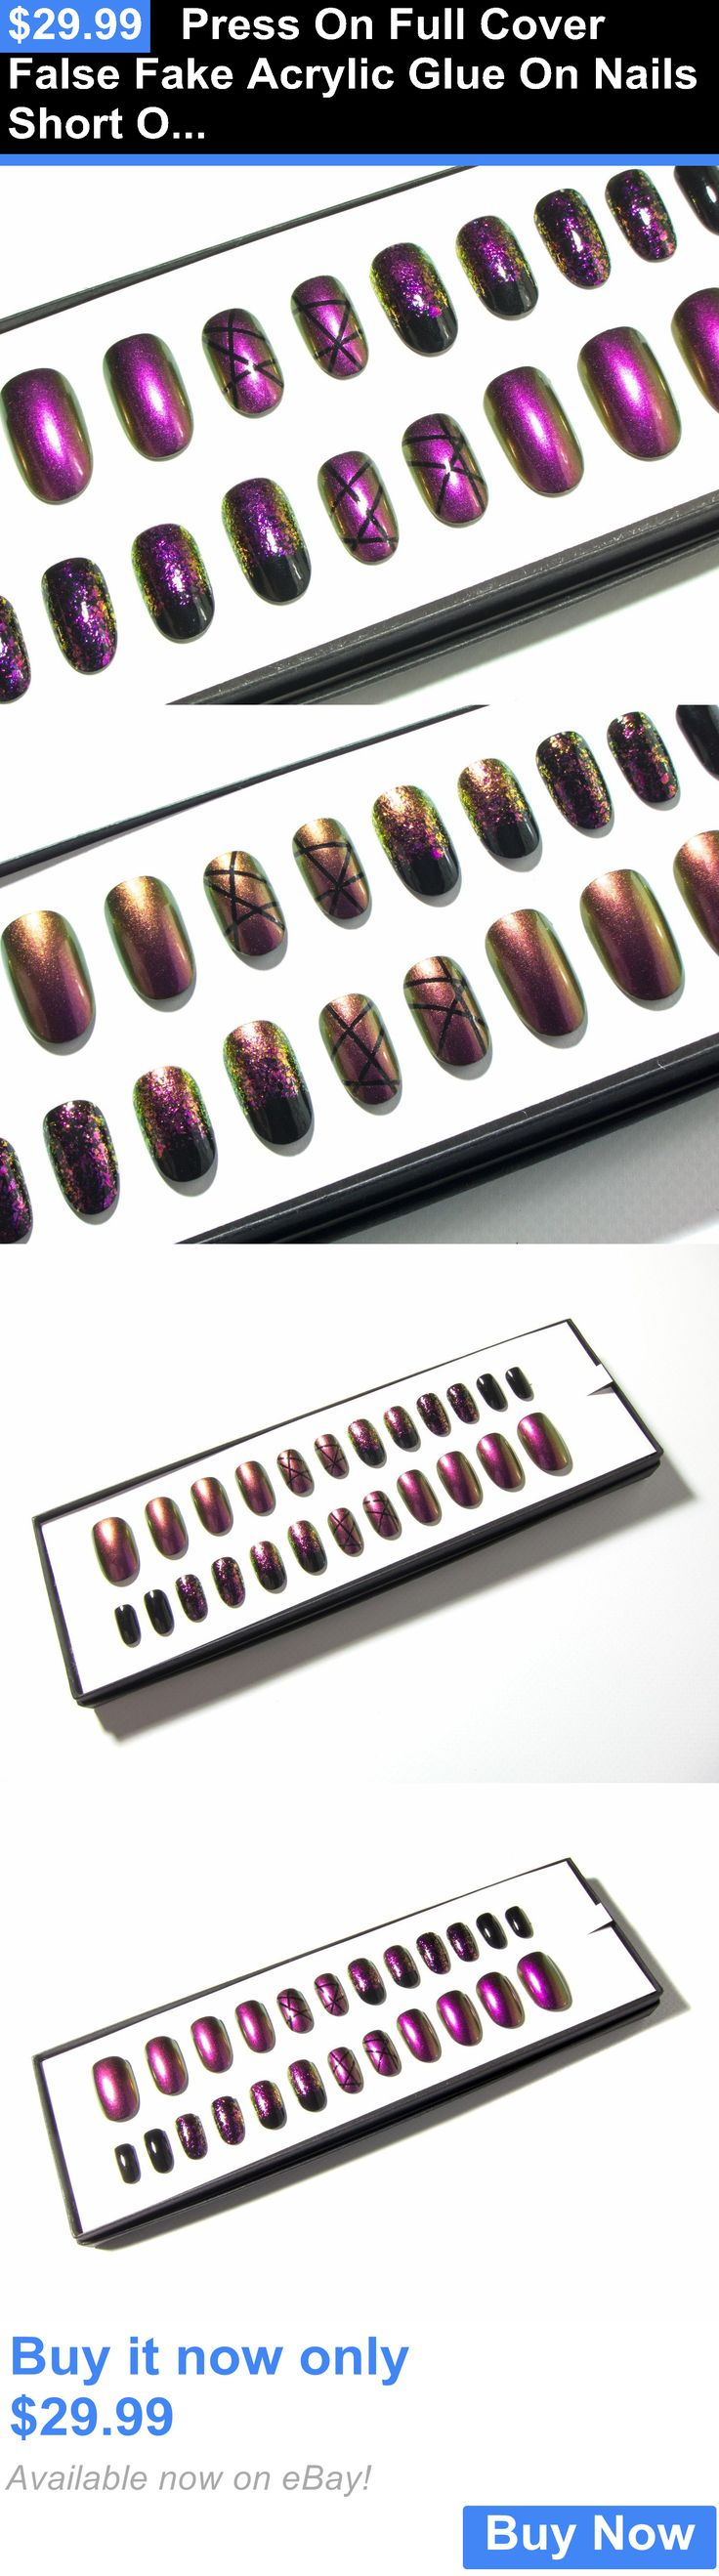 Press-On Nails: Press On Full Cover False Fake Acrylic Glue On Nails Short Oval Multichrome Art BUY IT NOW ONLY: $29.99